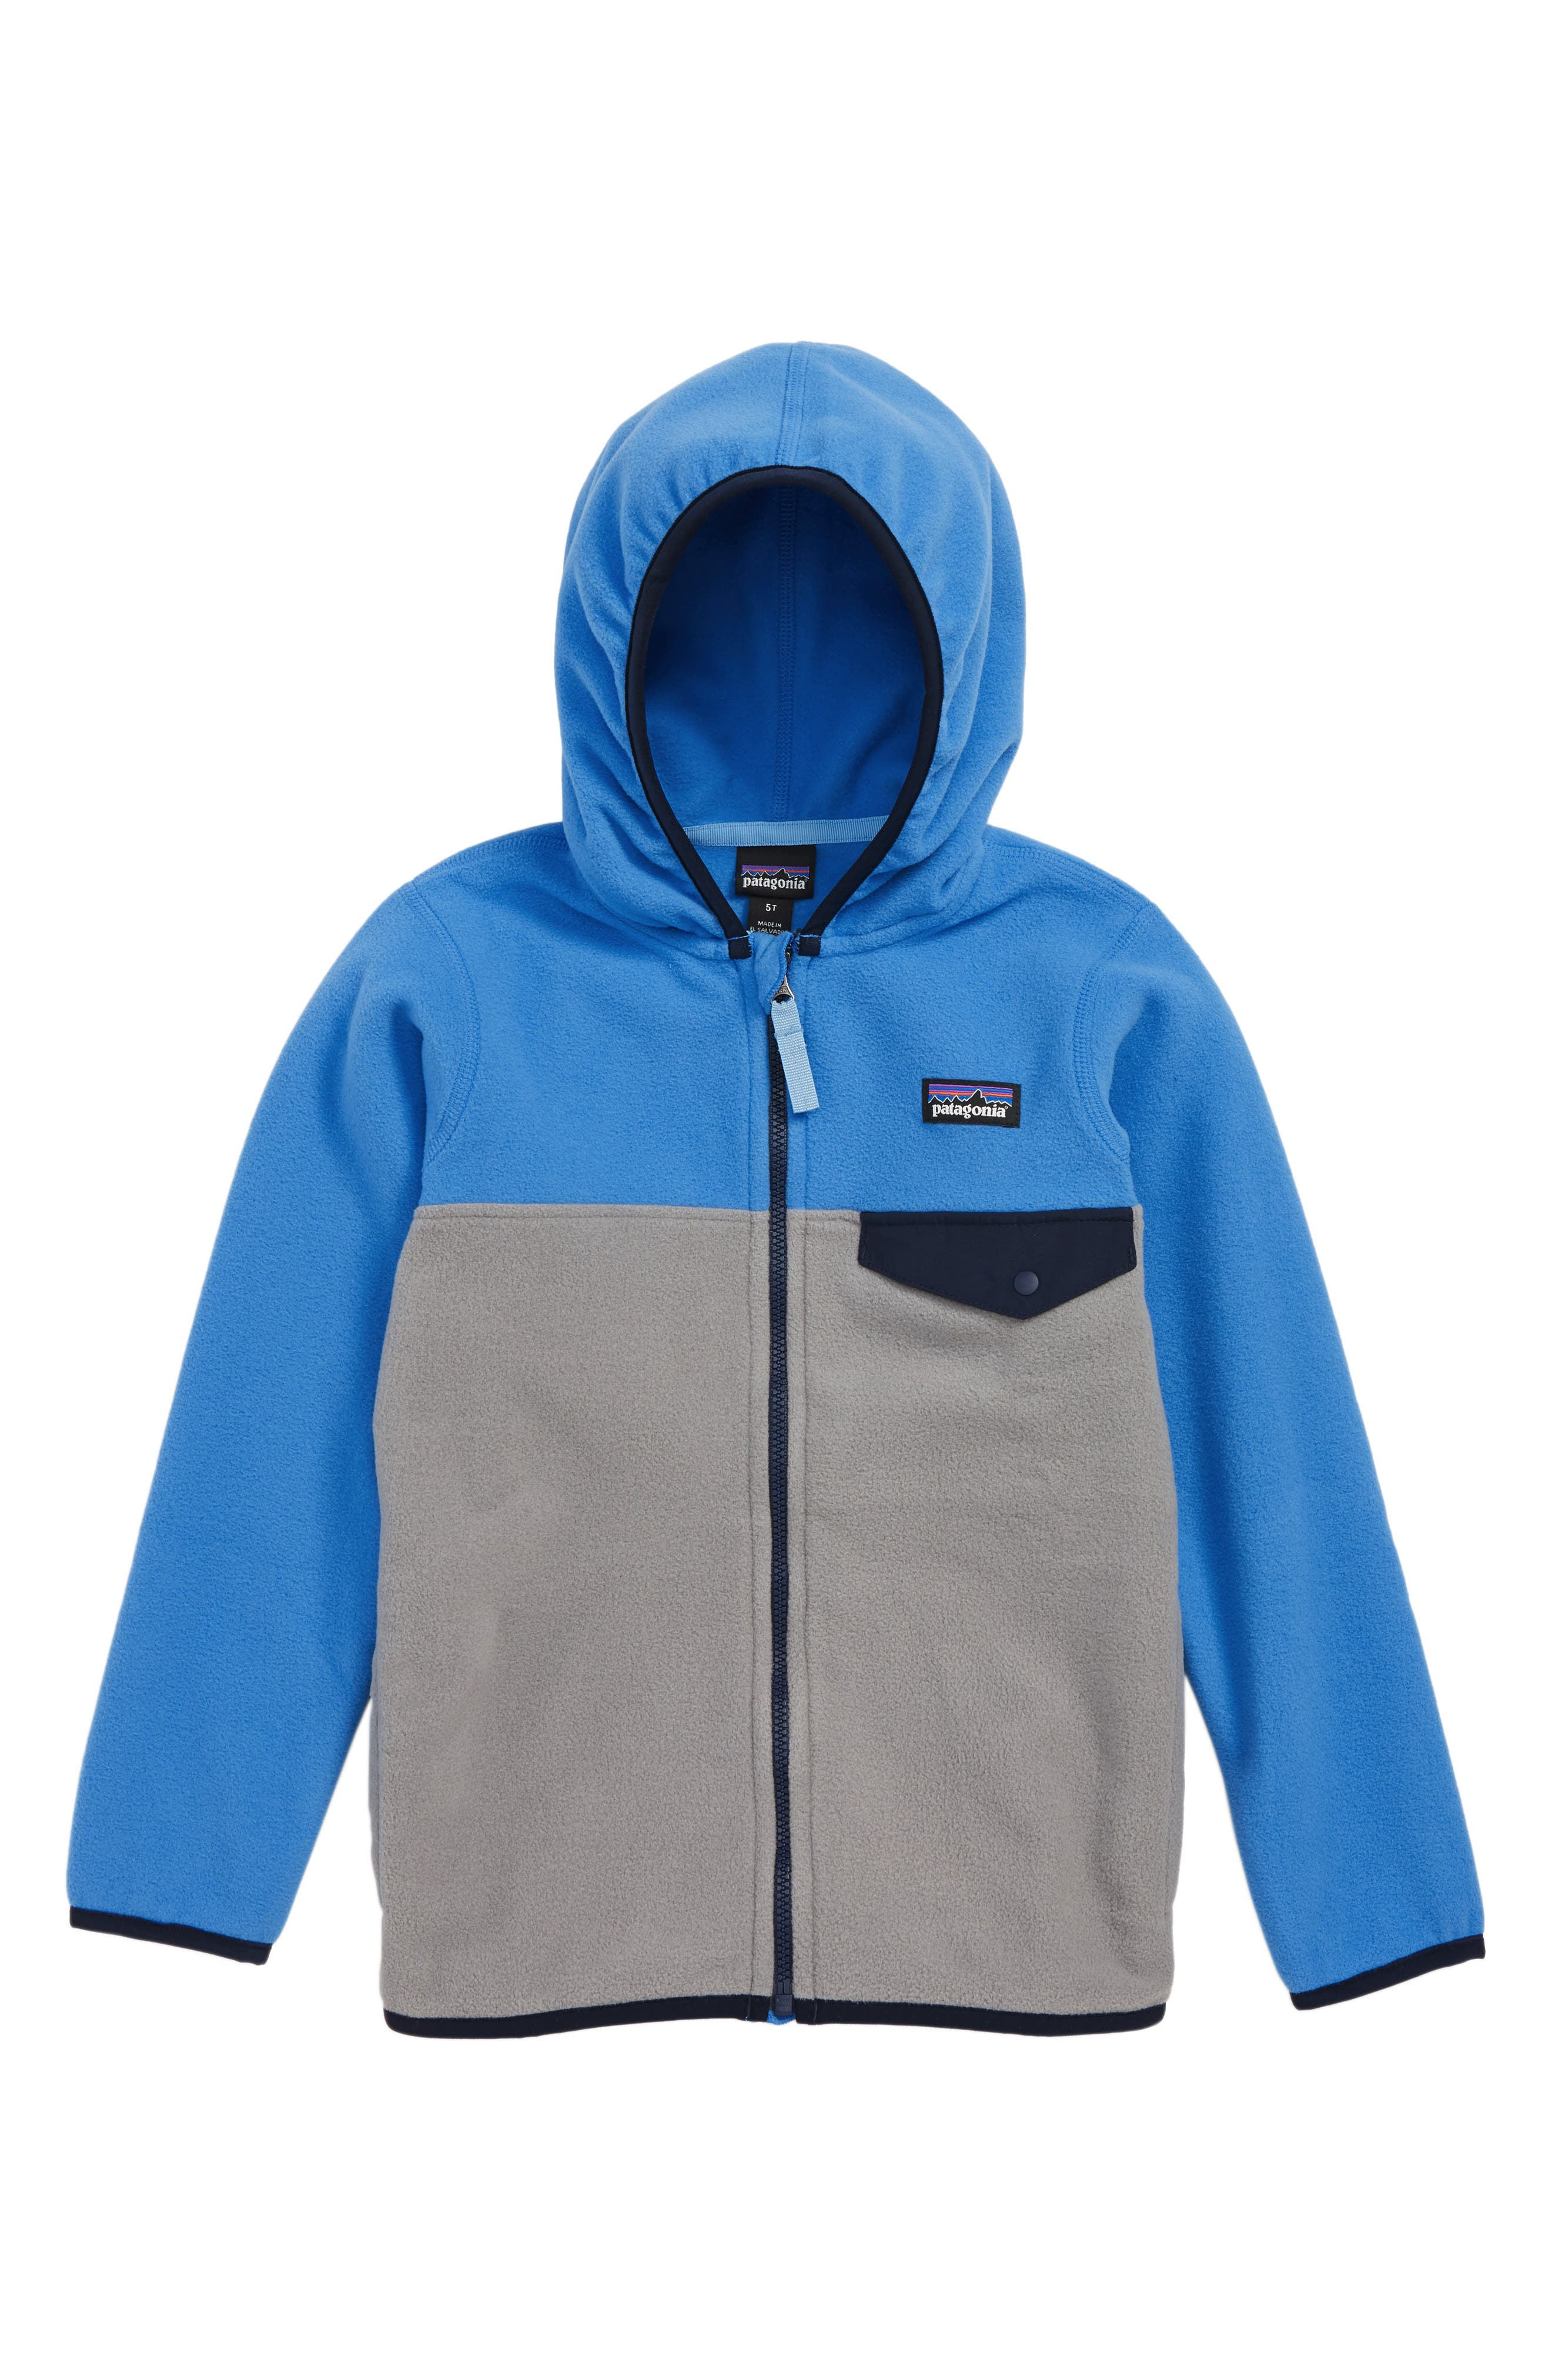 PATAGONIA, Micro D<sup>®</sup> Snap-T<sup>®</sup> Fleece Jacket, Main thumbnail 1, color, FEATHER GREY/ PORT BLUE